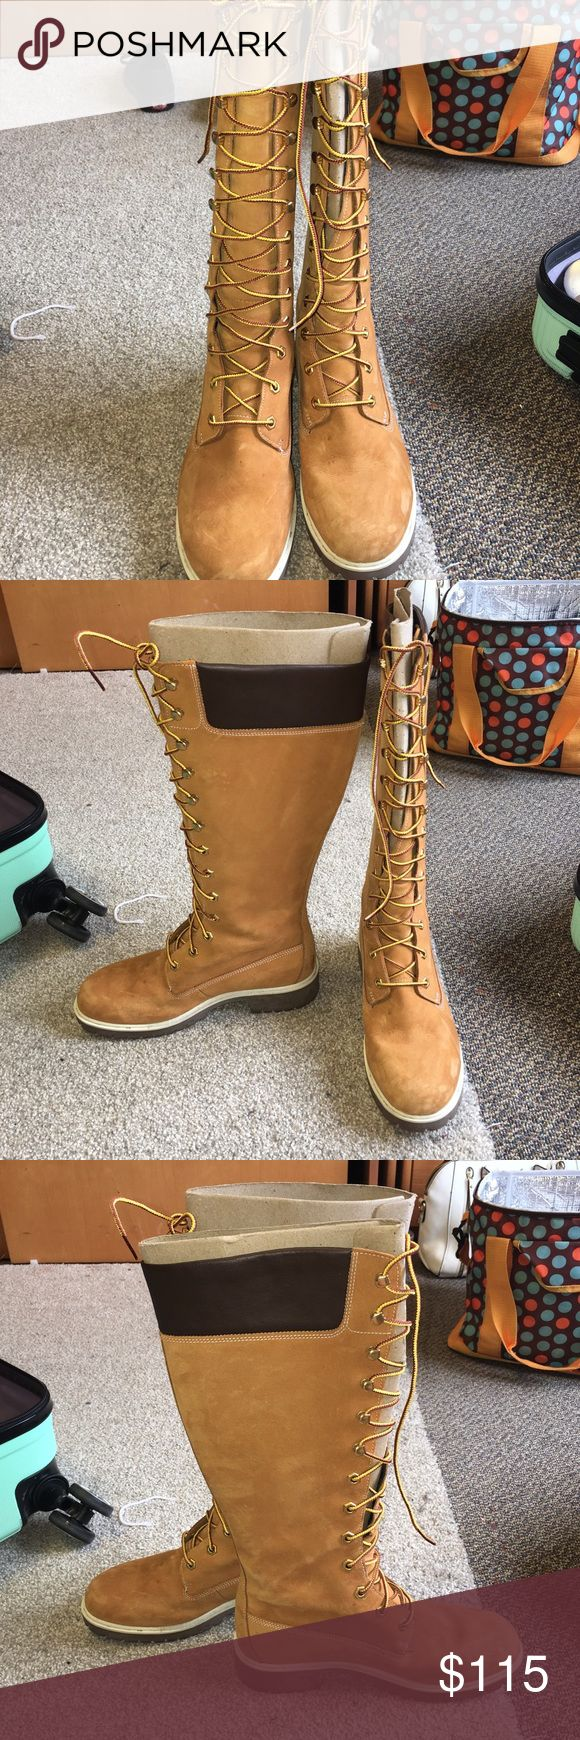 Knee High Timberland Boots Only worn a select amount of times! GREAT shape and NEED gone!! Size 7.5 Timberland Shoes Winter & Rain Boots